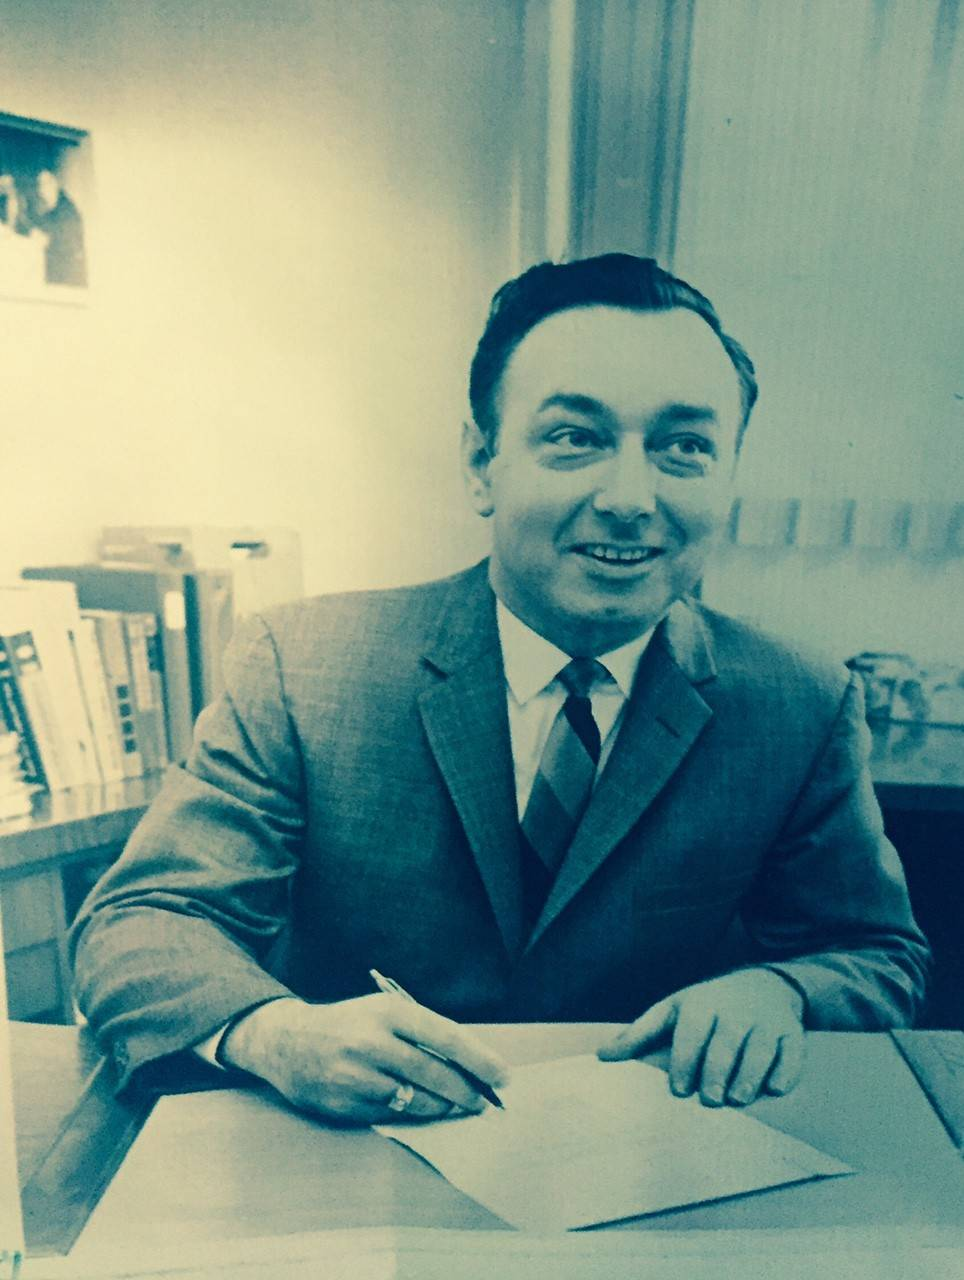 Businessman Donald Amfahr working behind his desk, doing a job he loved.